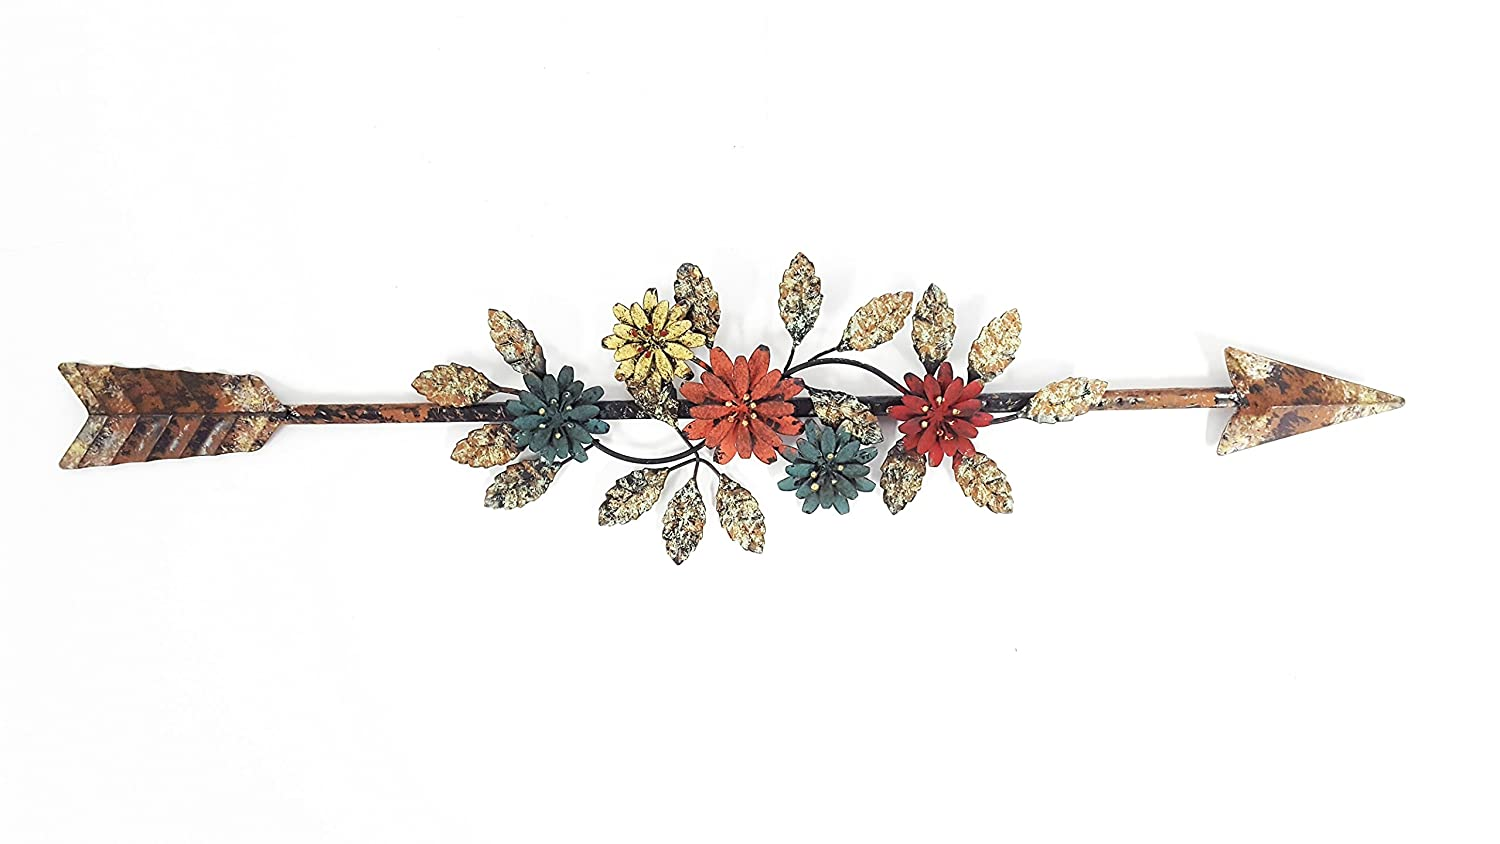 Metal Flower-Embellished Arrow Wall Decor